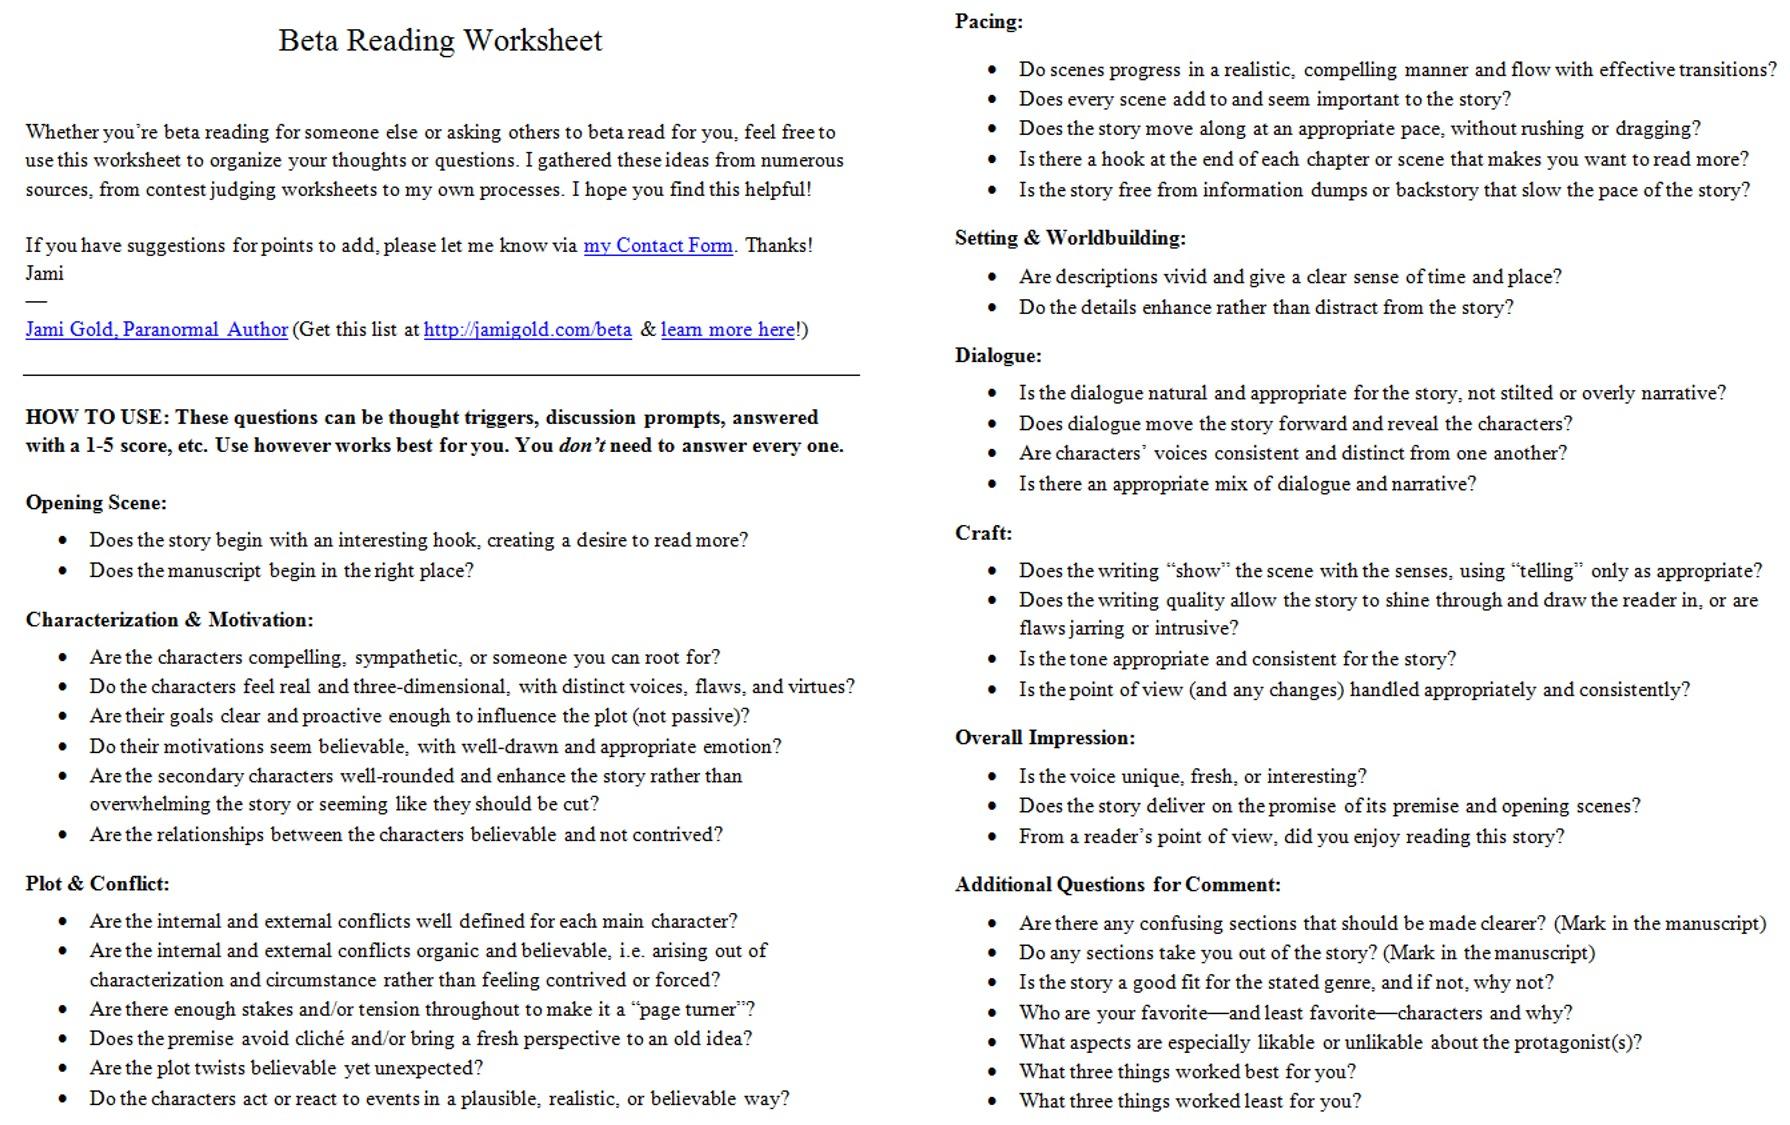 Aldiablosus  Remarkable Worksheets For Writers  Jami Gold Paranormal Author With Fetching Screen Shot Of The Twopage Beta Reading Worksheet With Extraordinary Earth Layers Worksheet Middle School Also Section   What Shapes An Ecosystem Worksheet Answers In Addition Note Taking Worksheet Radioactivity And Nuclear Reactions And Ionic Compound Worksheet  Answers As Well As Pints Quarts Gallons Worksheets Additionally Multiplication  Digit By  Digit Worksheets From Jamigoldcom With Aldiablosus  Fetching Worksheets For Writers  Jami Gold Paranormal Author With Extraordinary Screen Shot Of The Twopage Beta Reading Worksheet And Remarkable Earth Layers Worksheet Middle School Also Section   What Shapes An Ecosystem Worksheet Answers In Addition Note Taking Worksheet Radioactivity And Nuclear Reactions From Jamigoldcom